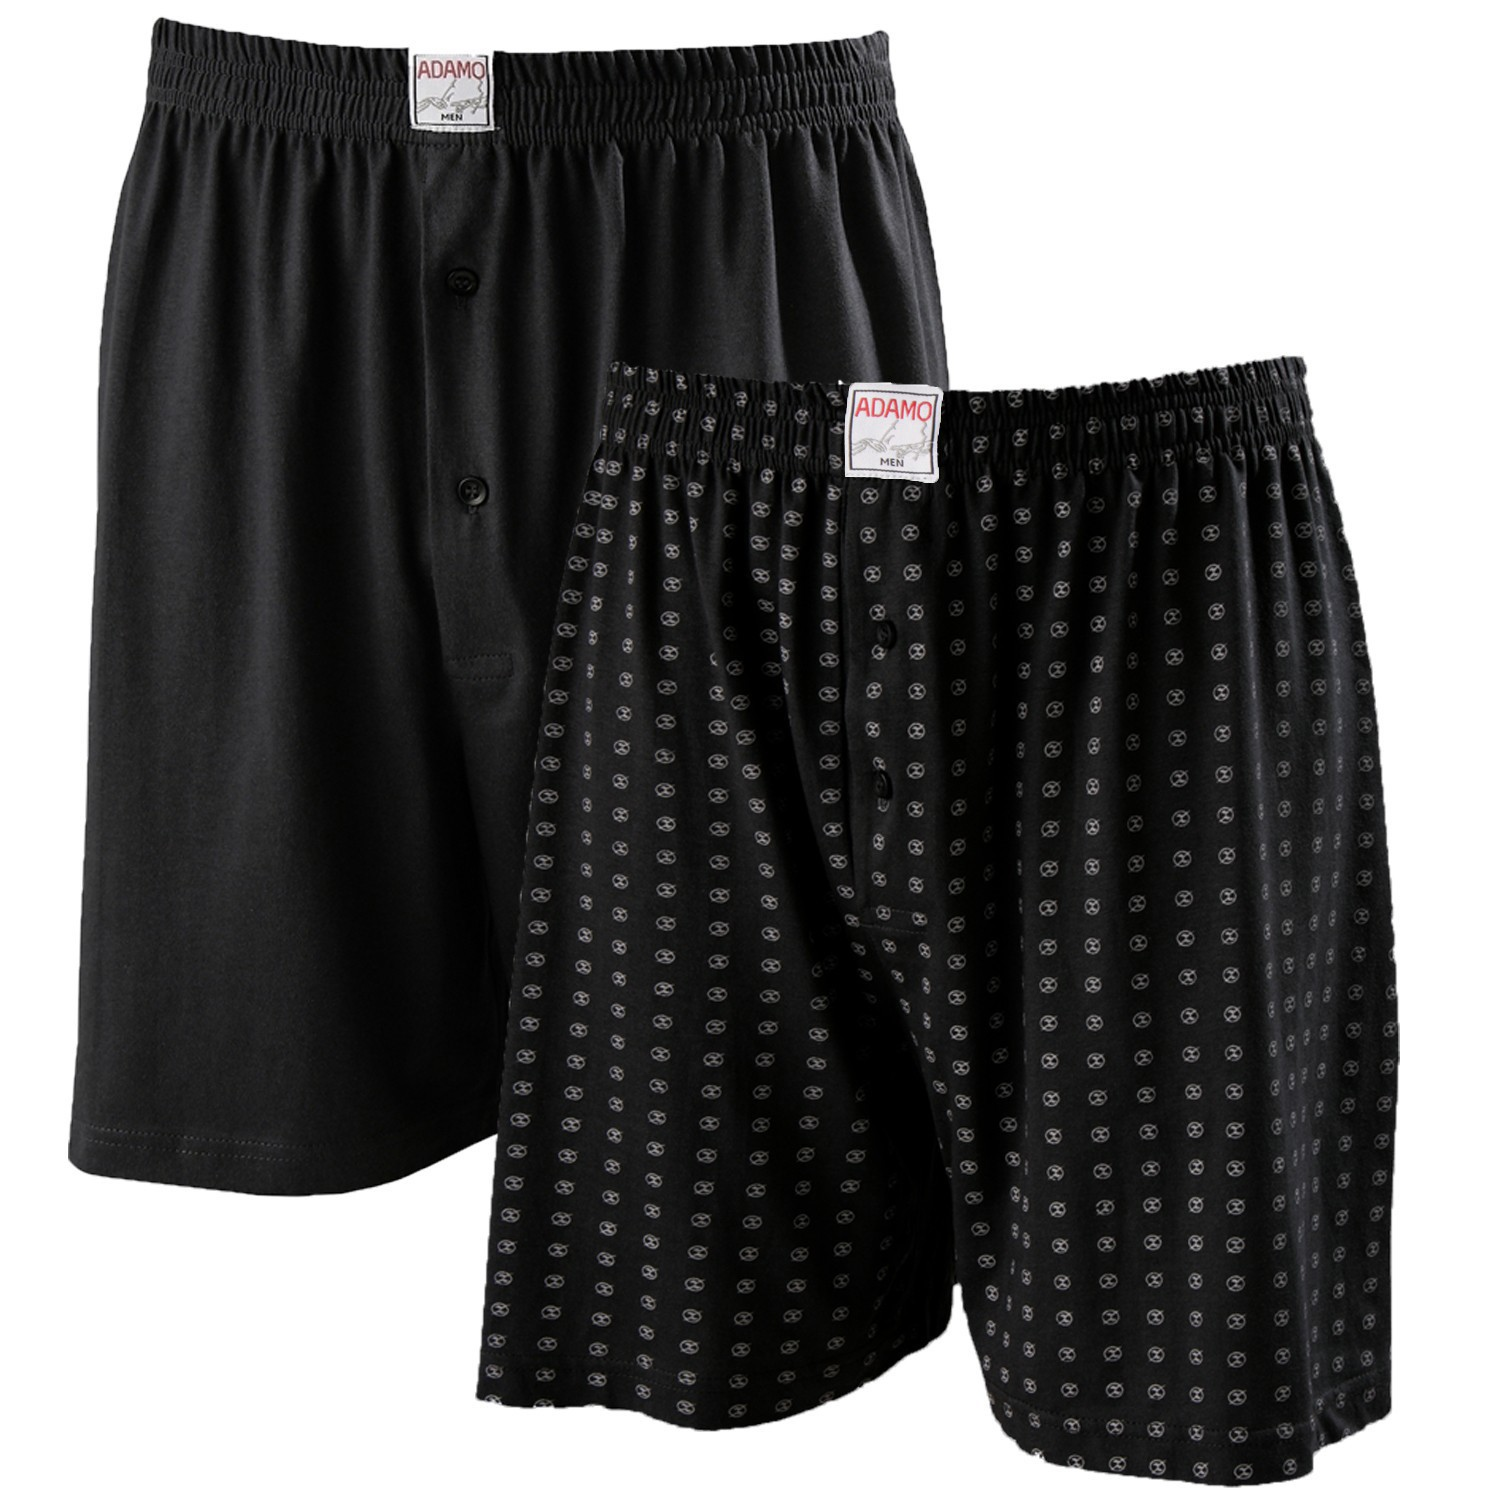 herren boxershorts gro e gr en amazon und ebay. Black Bedroom Furniture Sets. Home Design Ideas